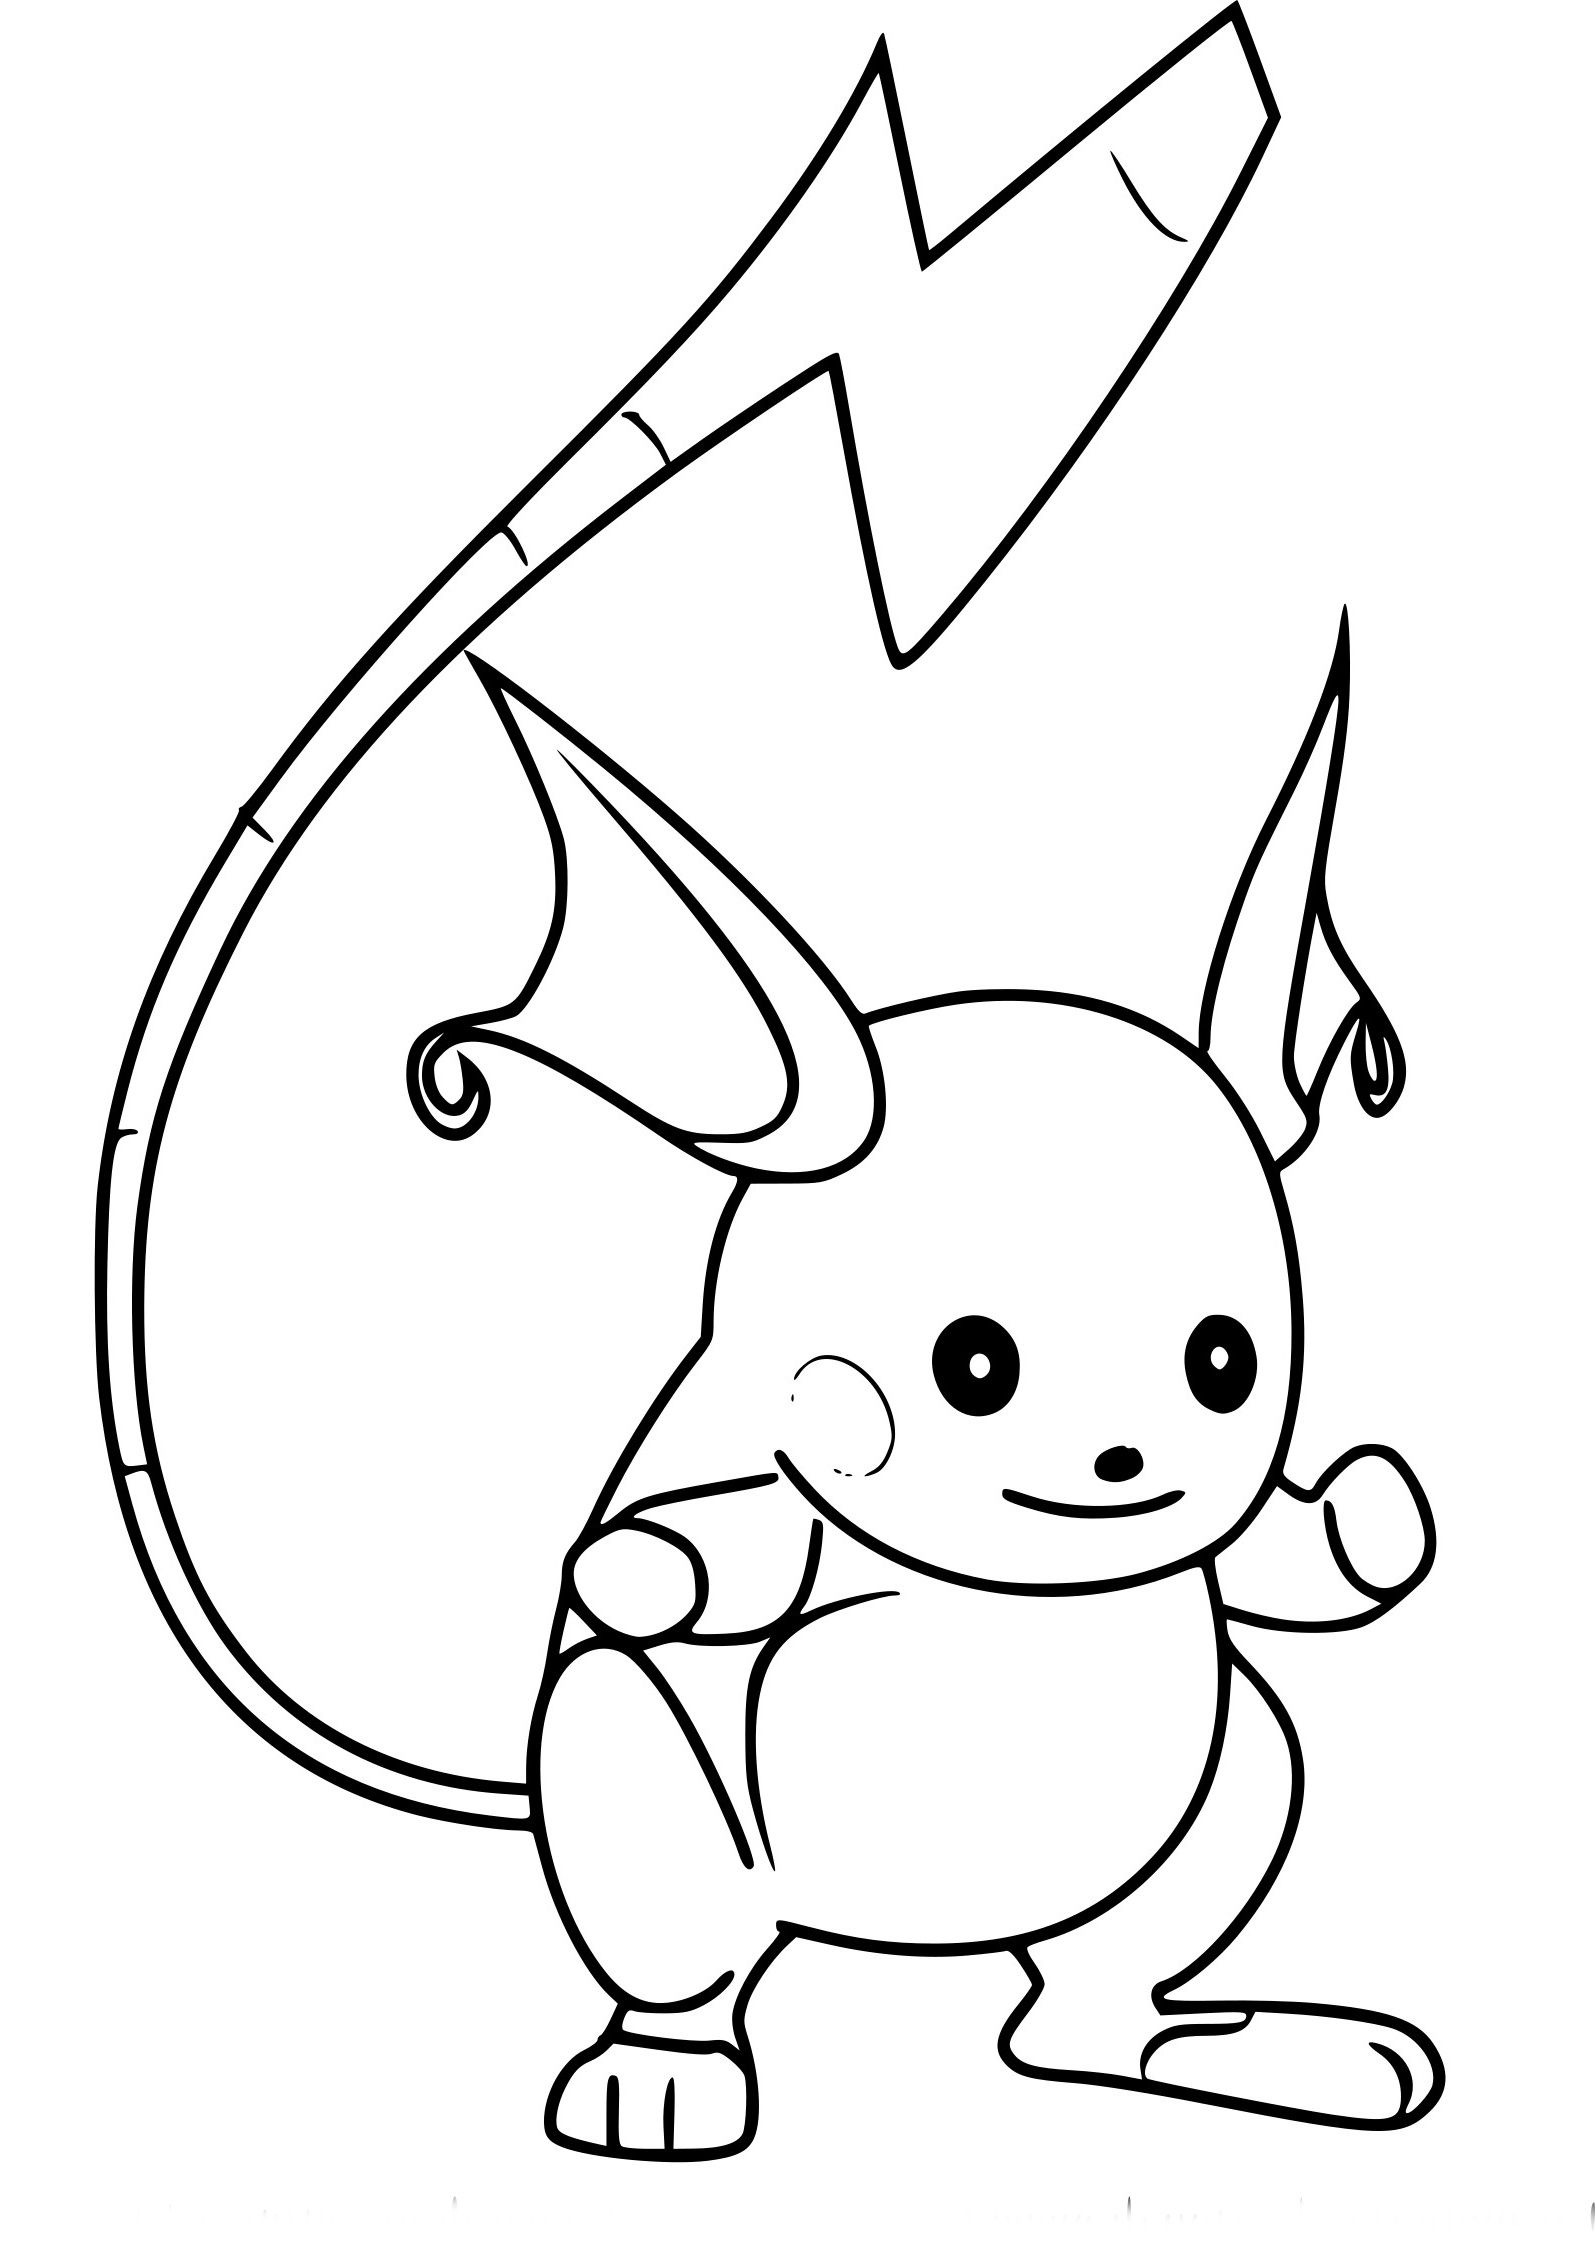 10 Impressionnant De Coloriage Raichu Photographie Coloring Pages Raichu Pokemon Go Pokemon Red